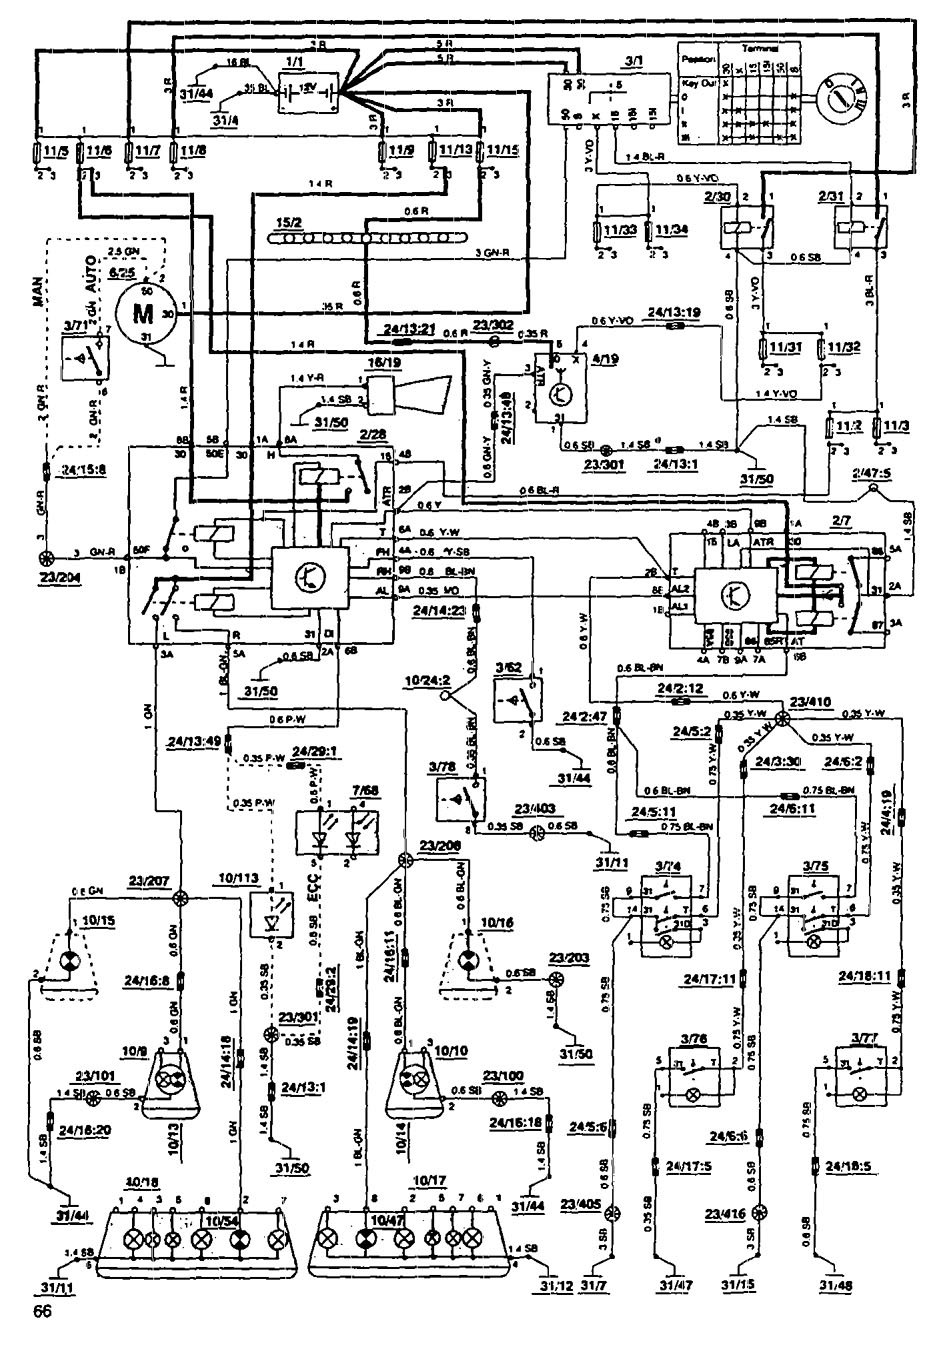 Volvo 850 (1993) - wiring diagrams - security/anti-theft - Carknowledge.infoCarknowledge.info